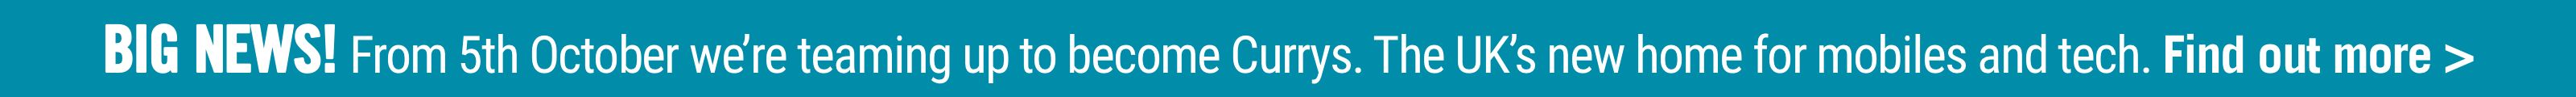 BIG NEWS! From 5th October we're teaming up to become Currys. The UK's new home for mobiles and tech. Find out more >